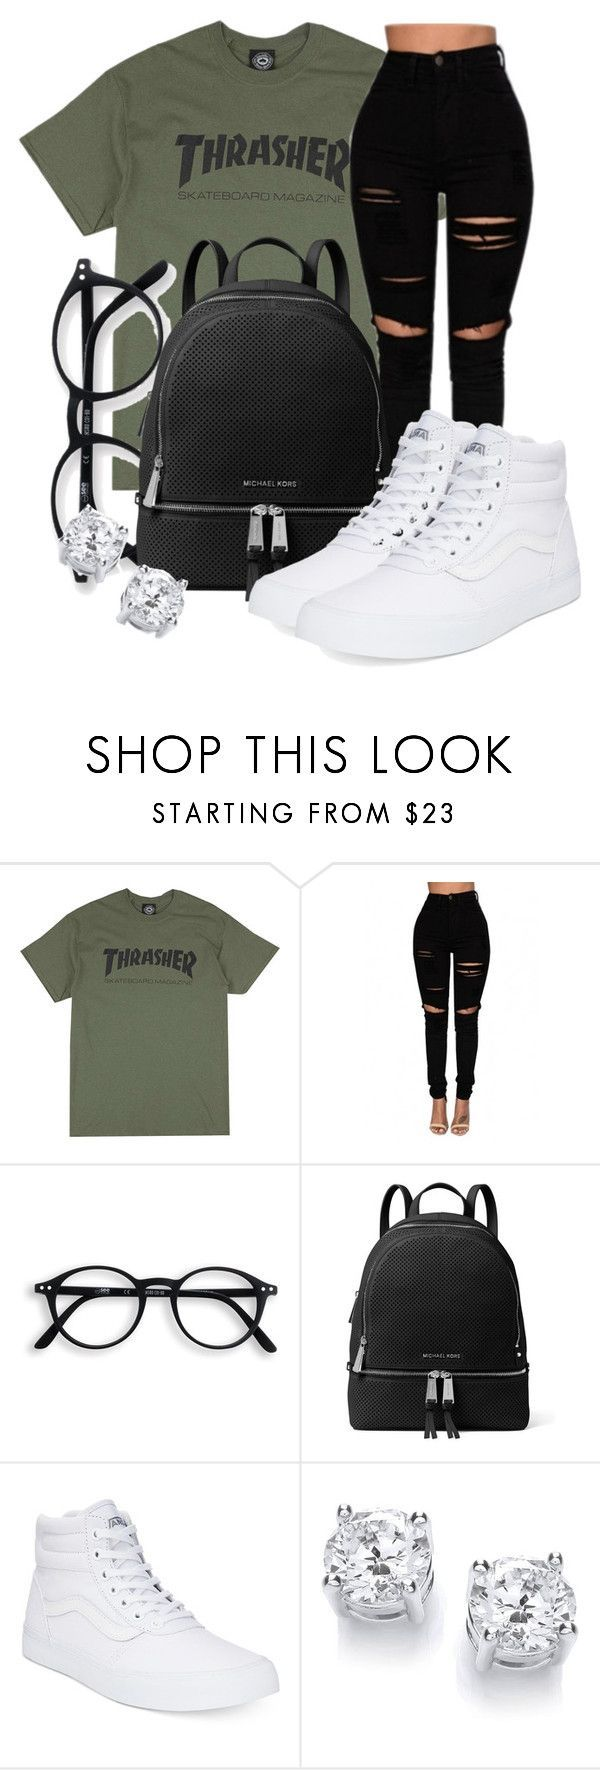 Untitled #570 by msfts-rep on Polyvore featuring MICHAEL Michael Kors and Vans -> SALE bis 70% auf Fashion -> klicken